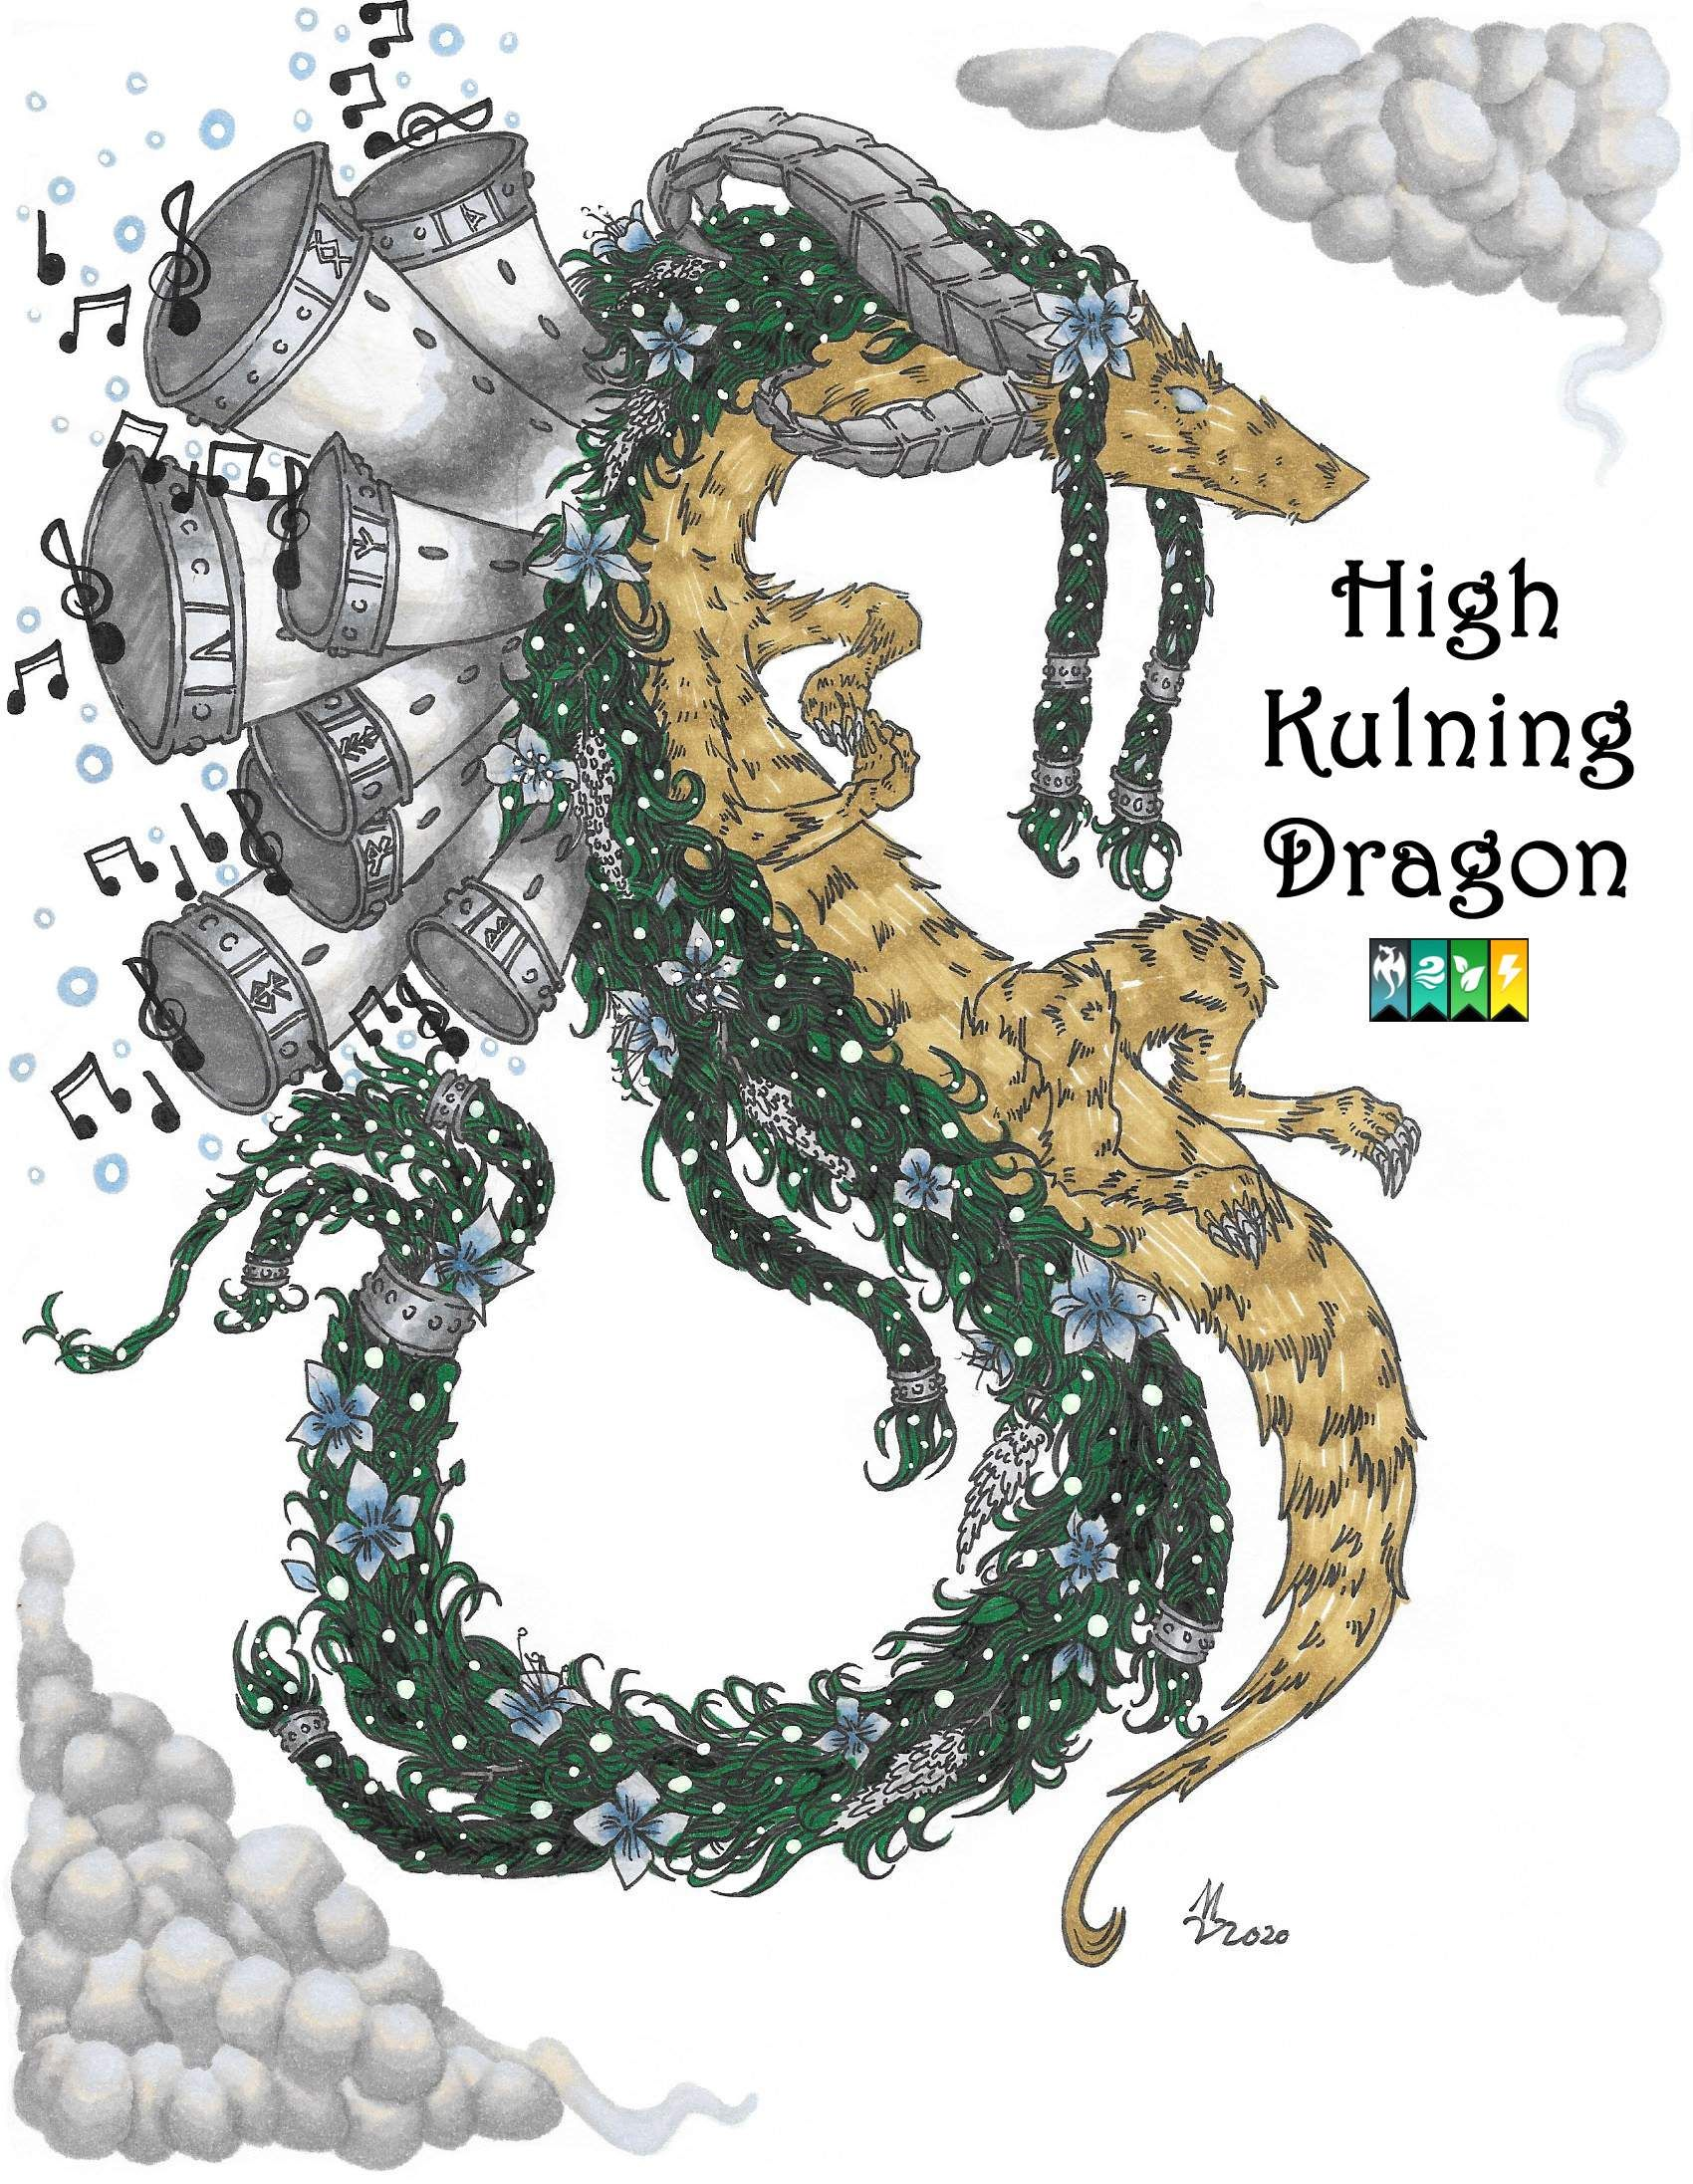 0_1597249147875_High Kulning Dragon.jpg